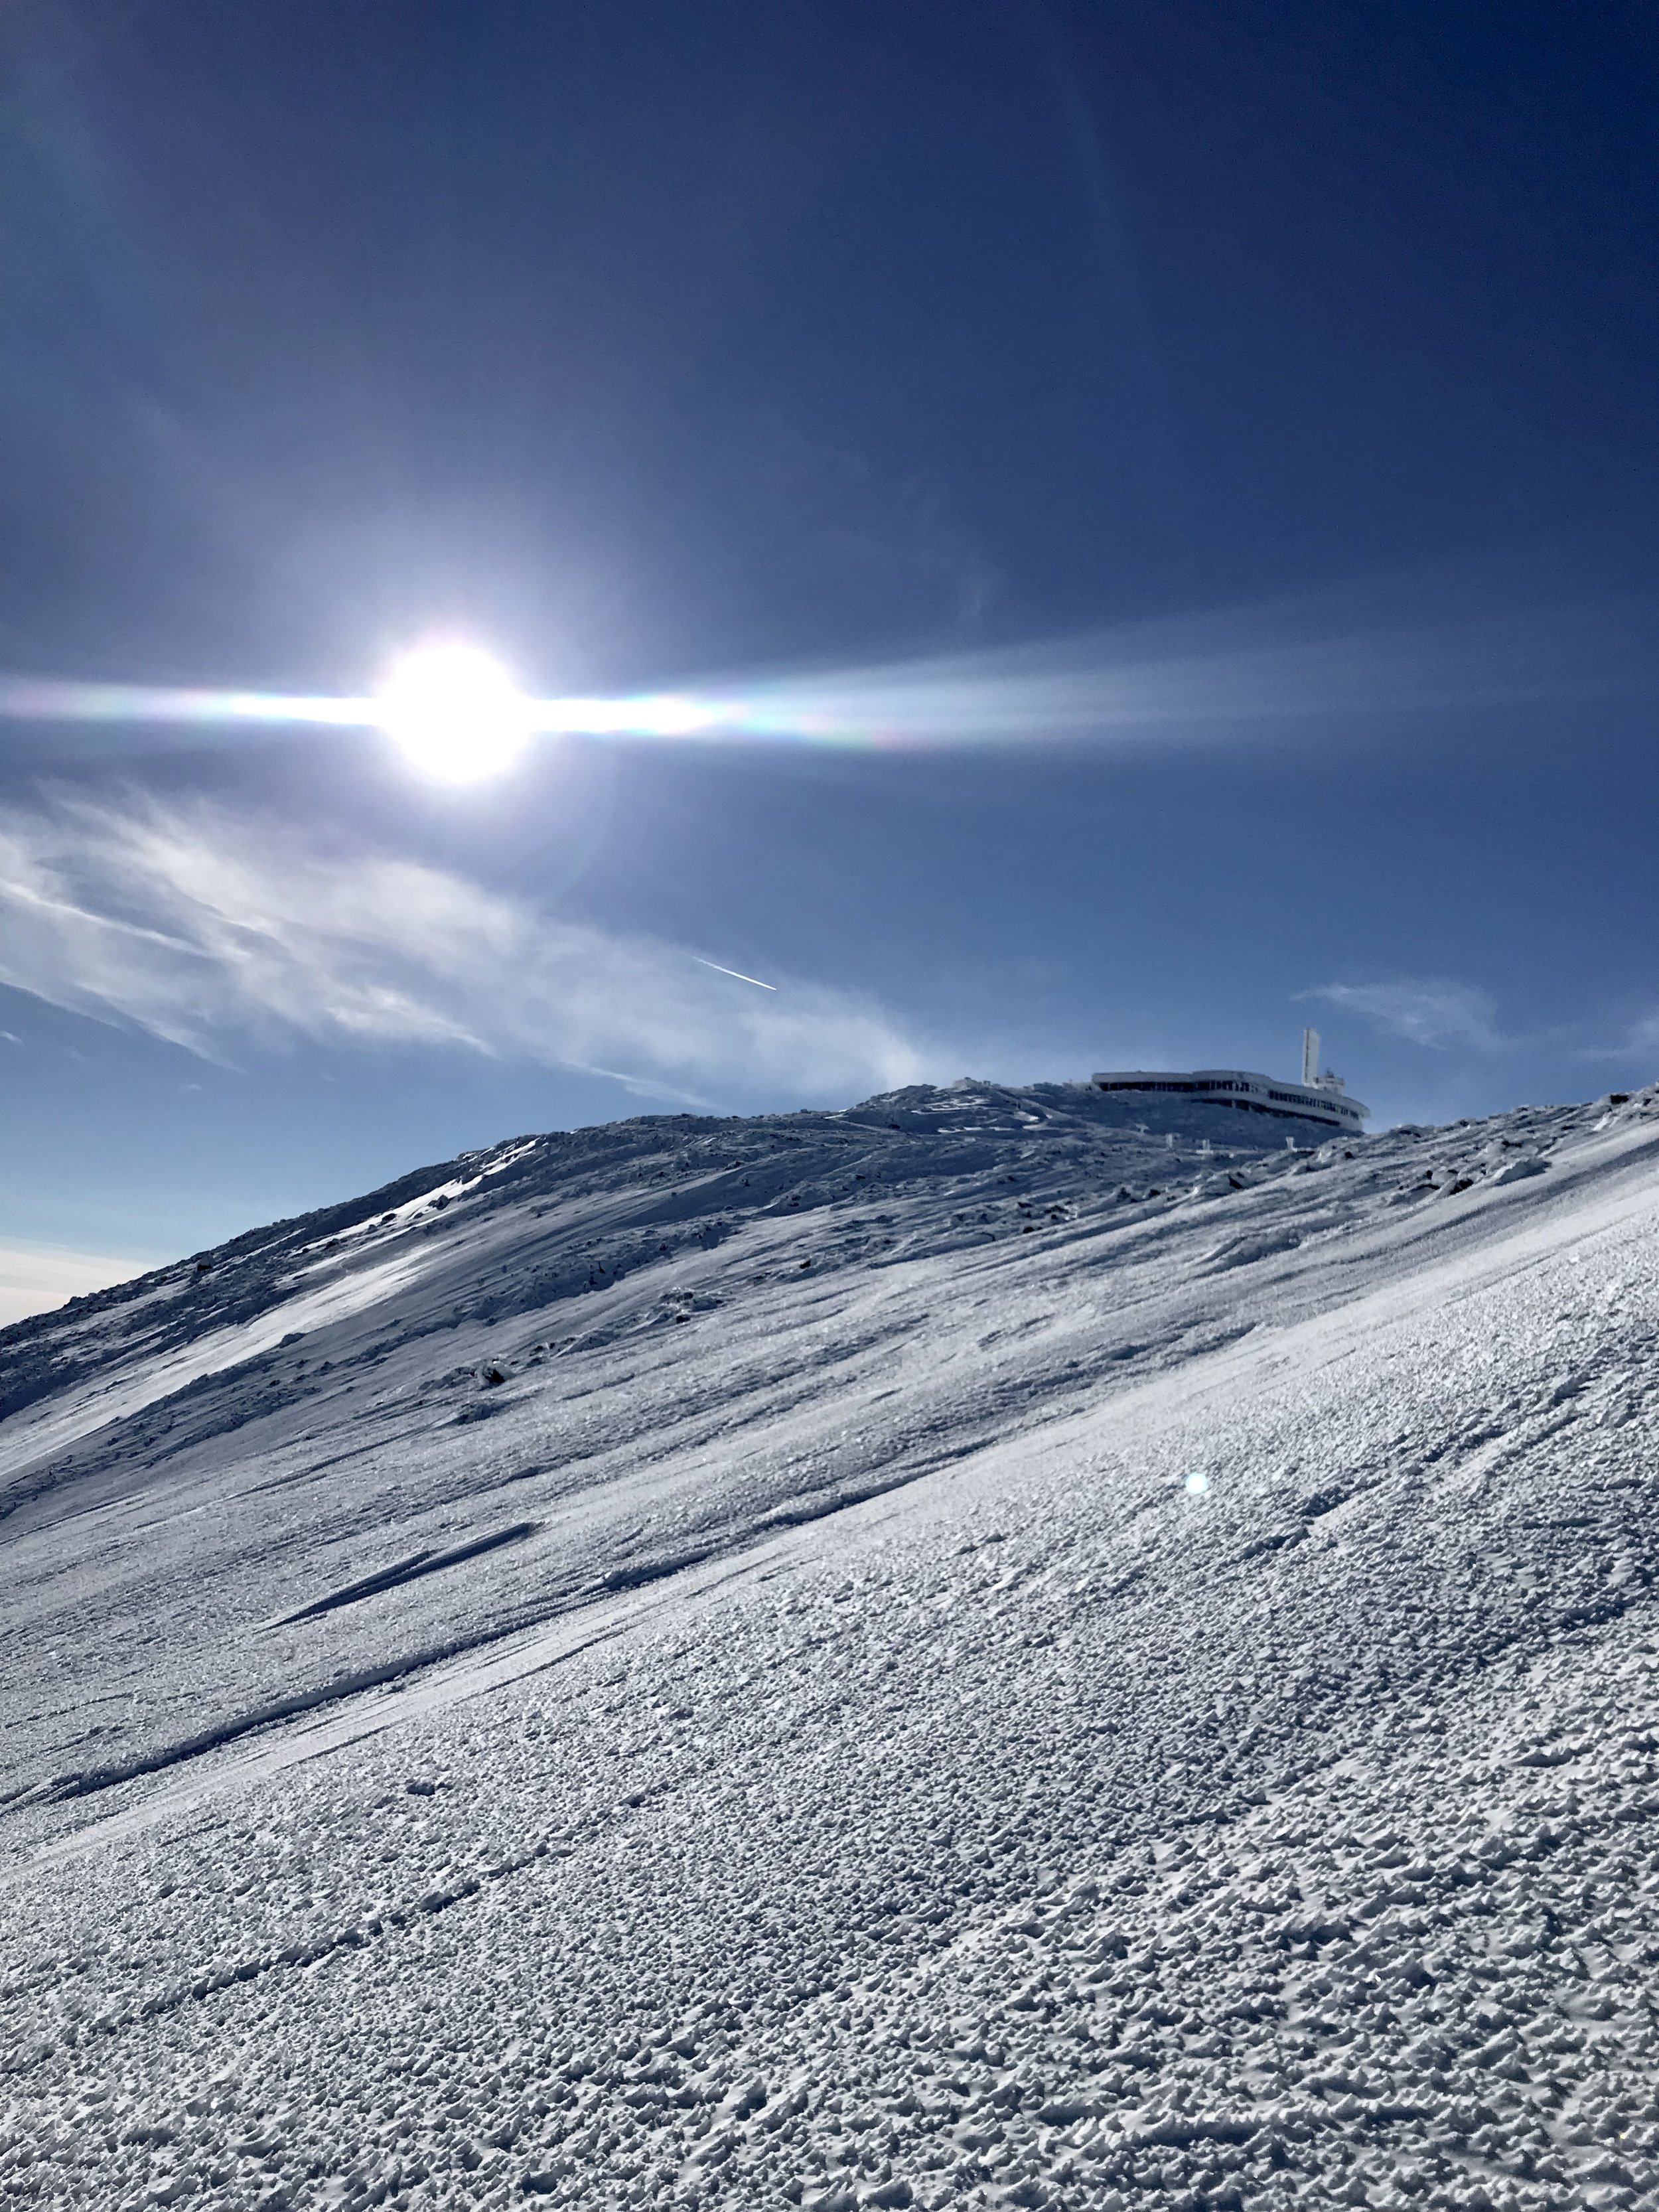 Eastern Snowfields and Summit of Mount Washington